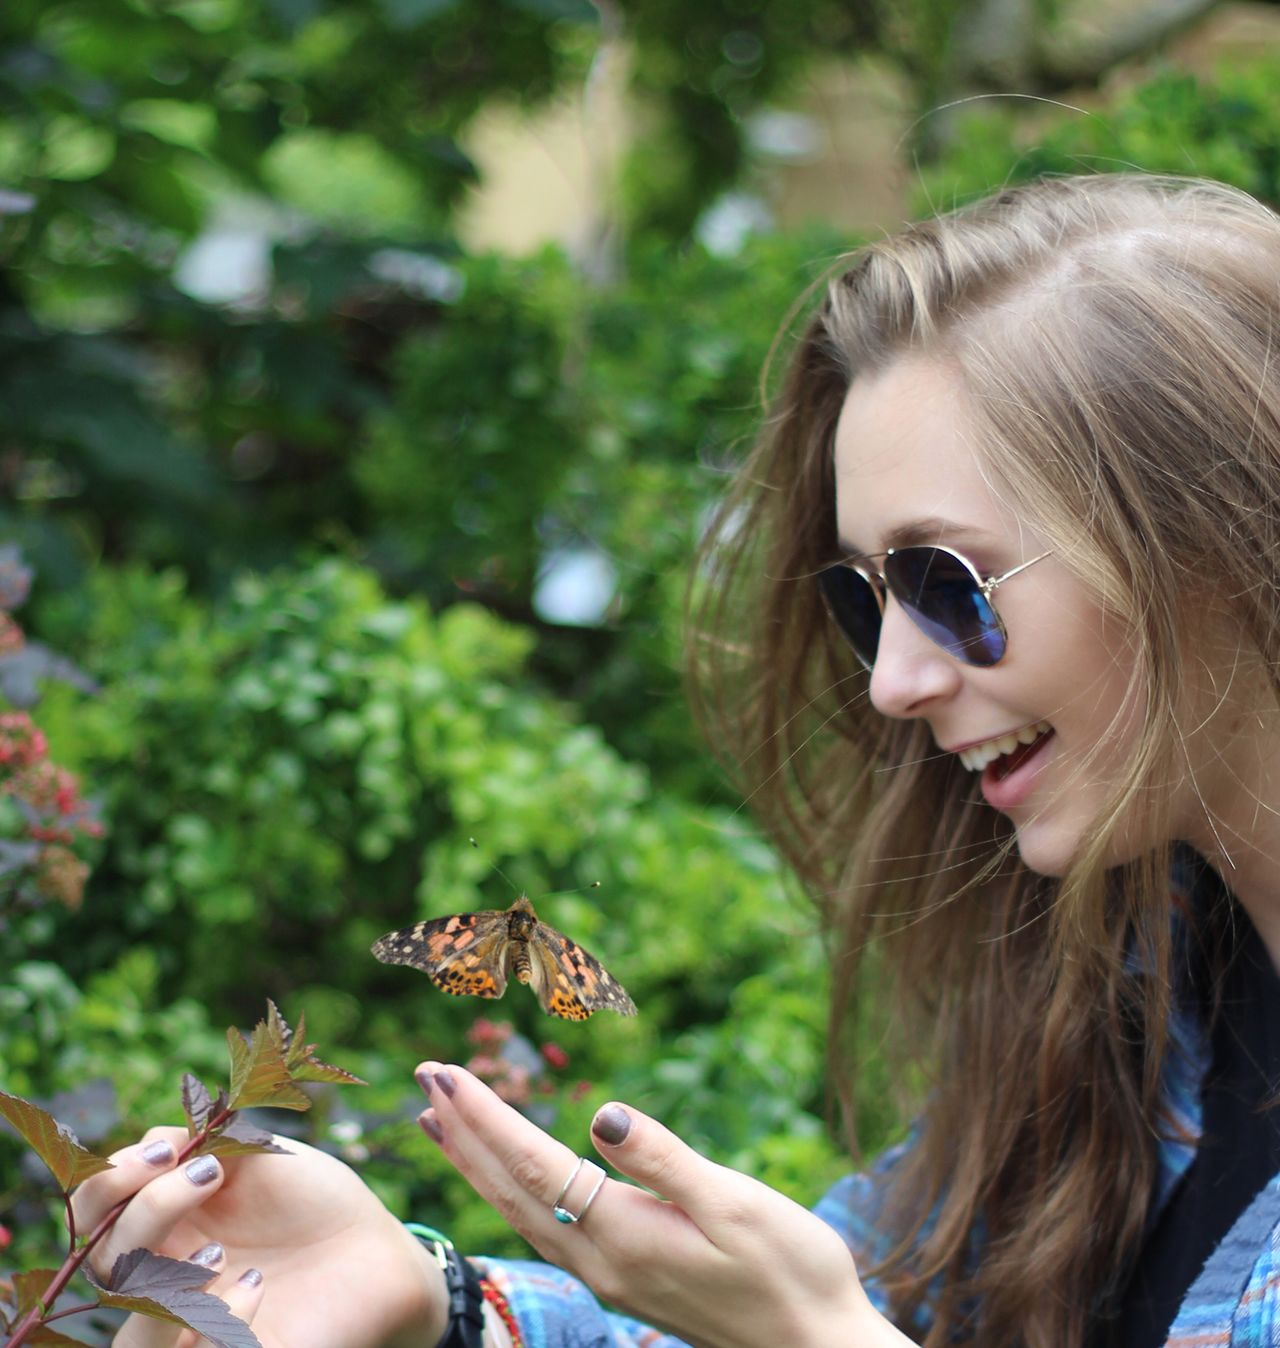 Butterfly Teenage Girls Nature Teenager Nature Long Hair Beautiful People Young Adult Blond Hair Beauty Headshot Sunglasses Portrait Young Women One Person Females People Insect Painted Lady Creature Care Kindness Fragility Delicate